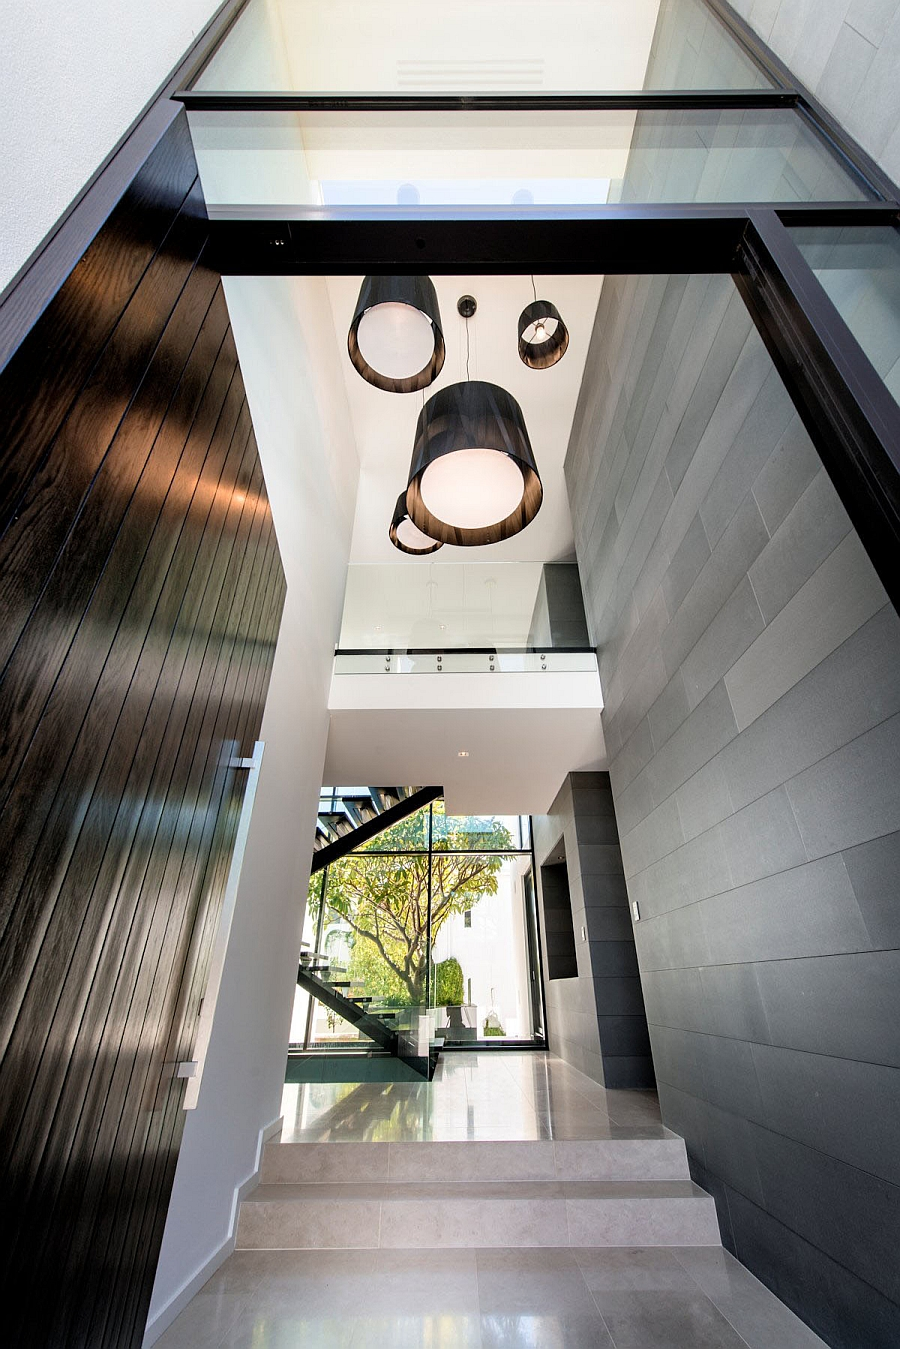 Large Pendants Working as Accents and Focal Points in the Hallway